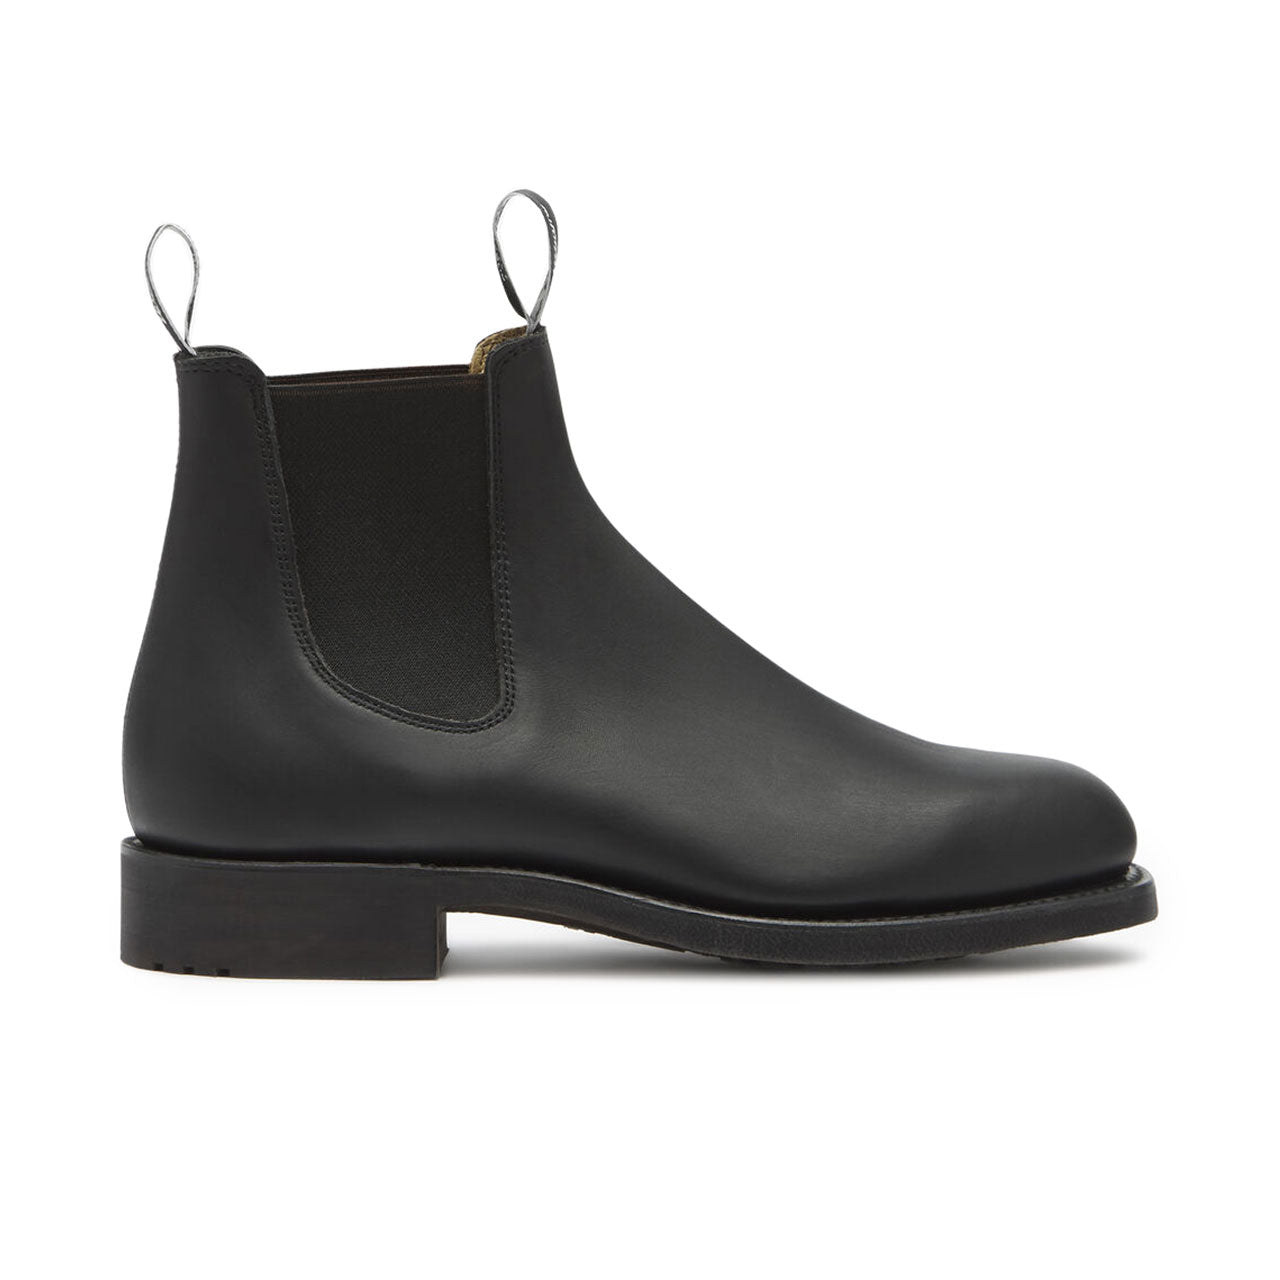 R.M. Williams Gardener Chelsea Boot